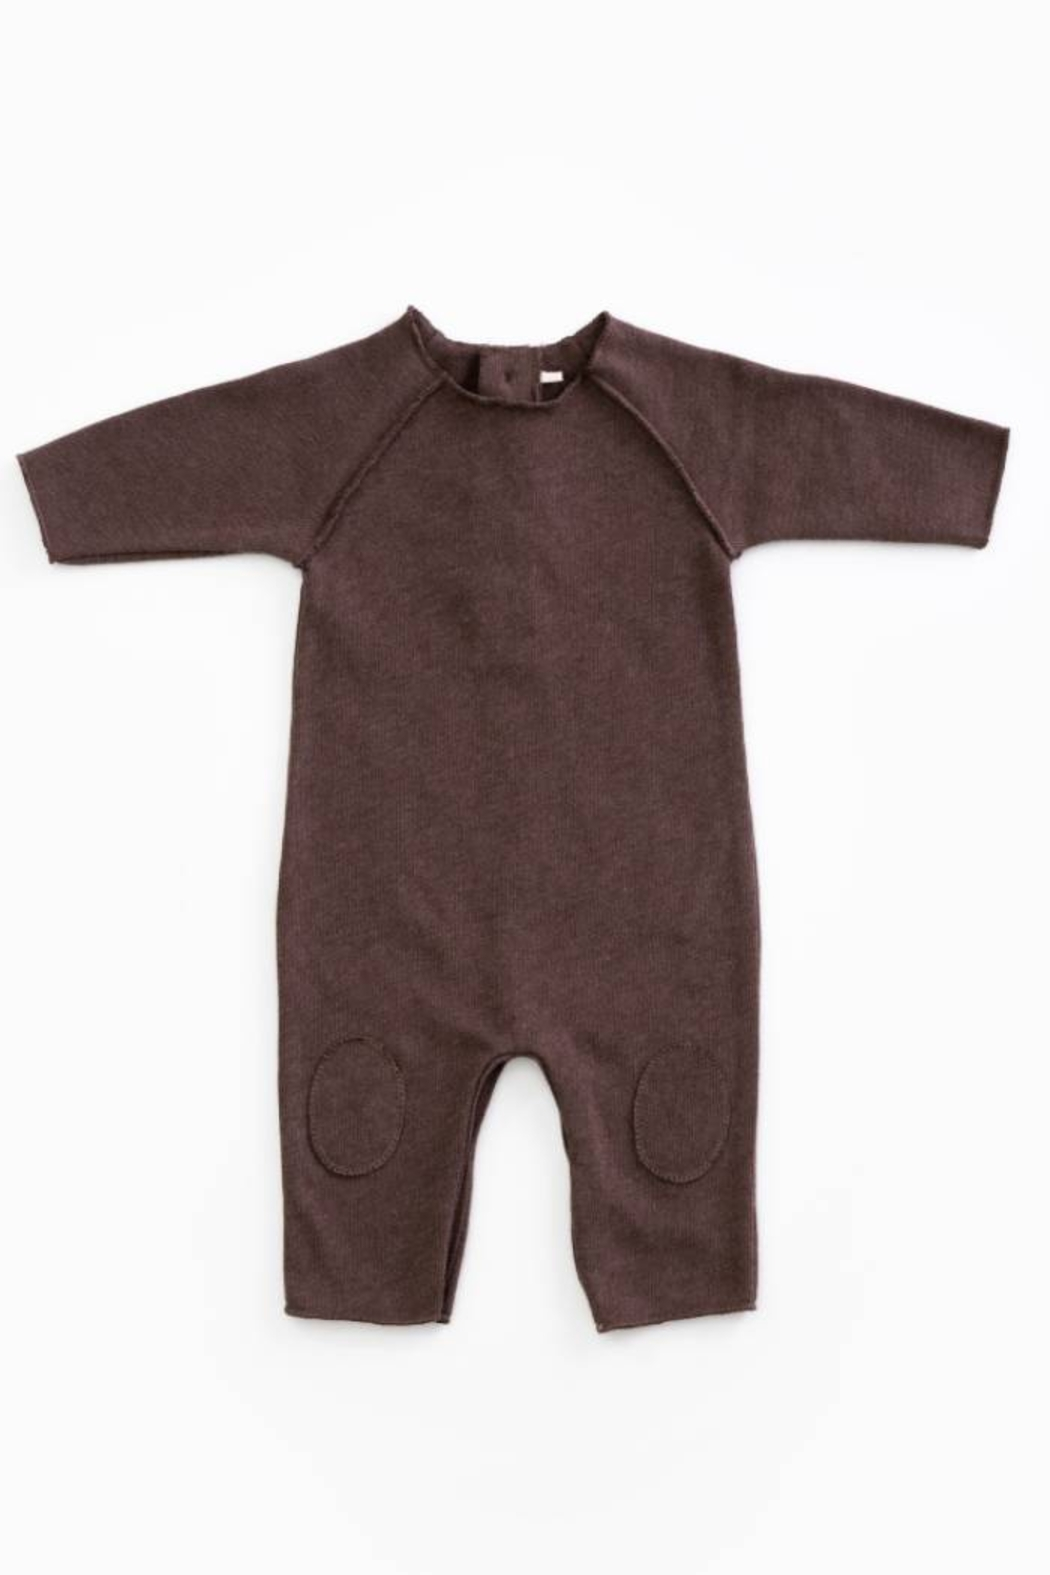 Play Up Mono Jersey Stitch Organic Cotton Baby Jumpsuit with knee Pads Woodwork - Main Image